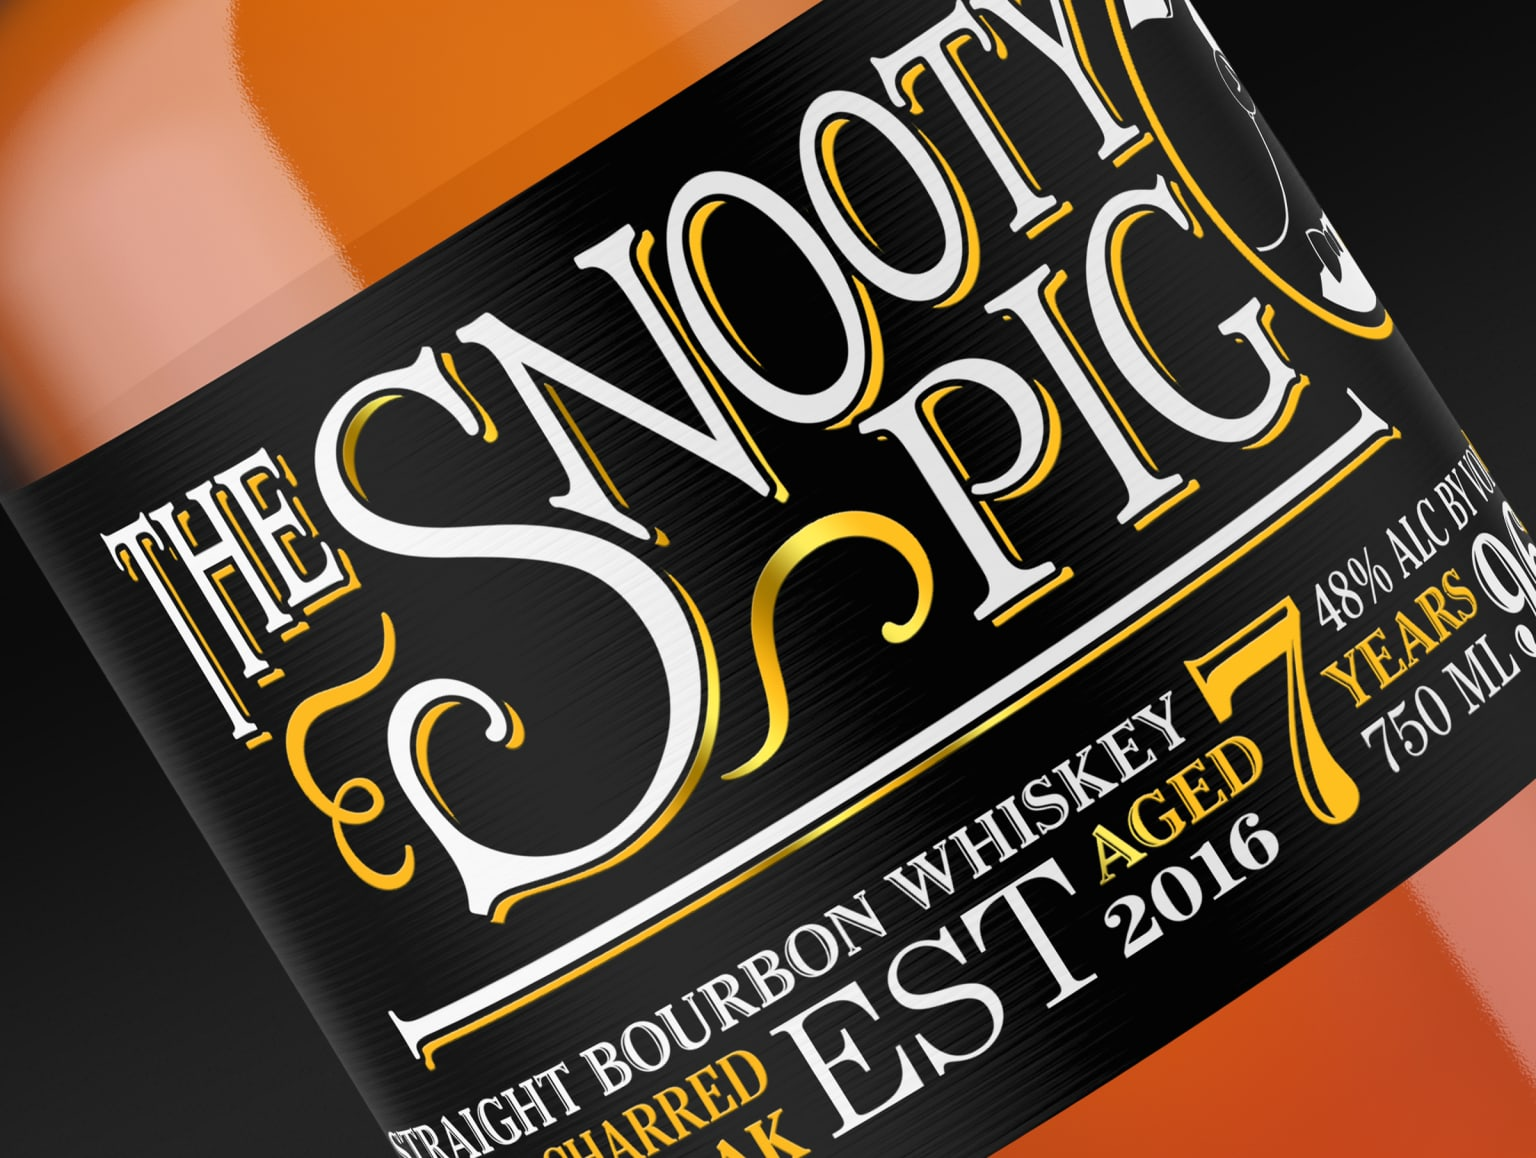 The Snooty Pig whiskey: Brand Identity | Package Design